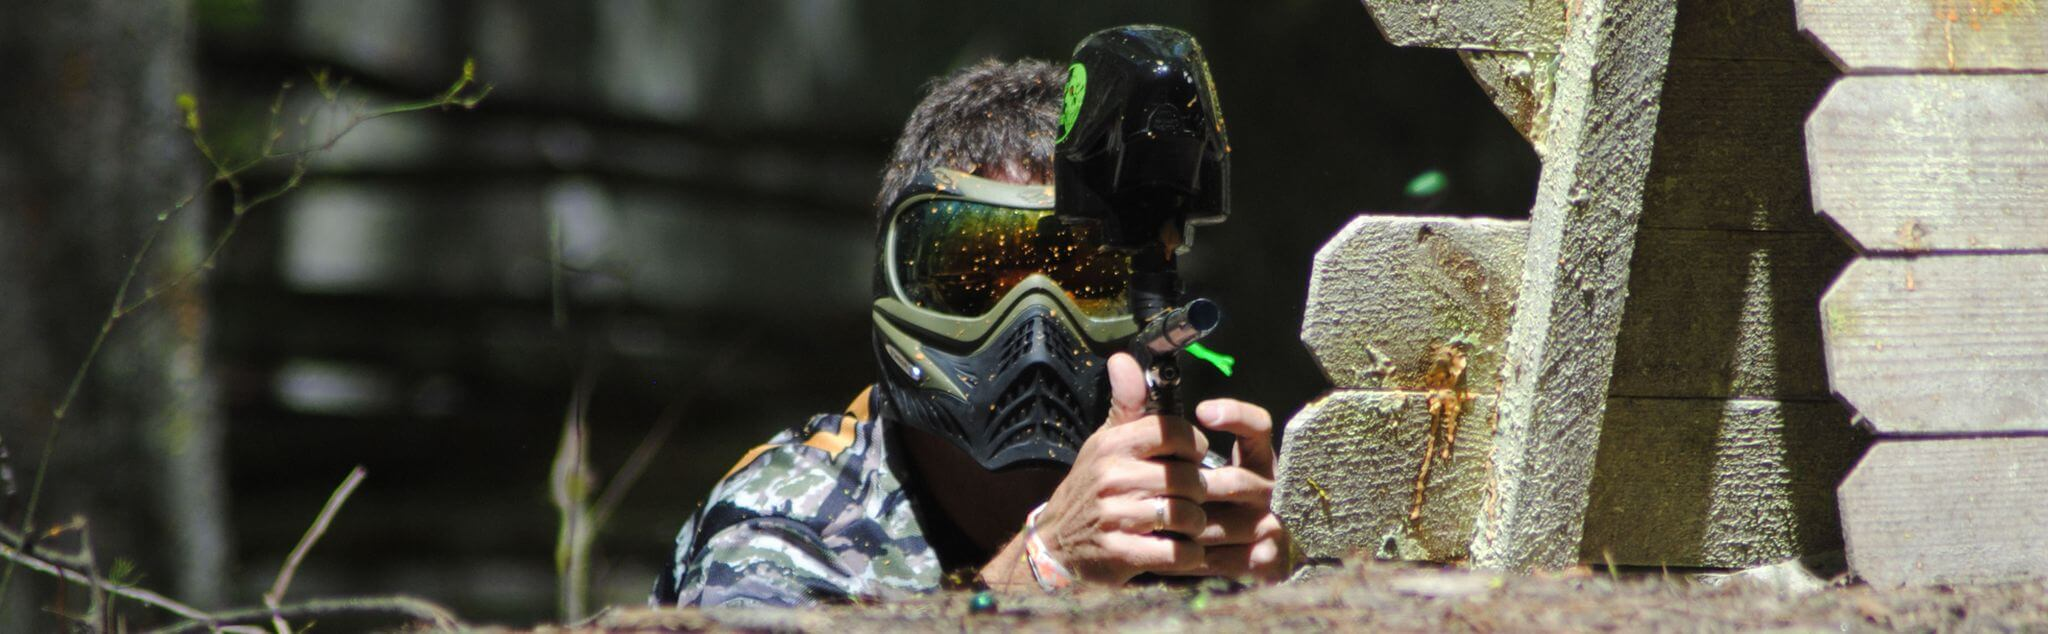 Paintball a Roncola